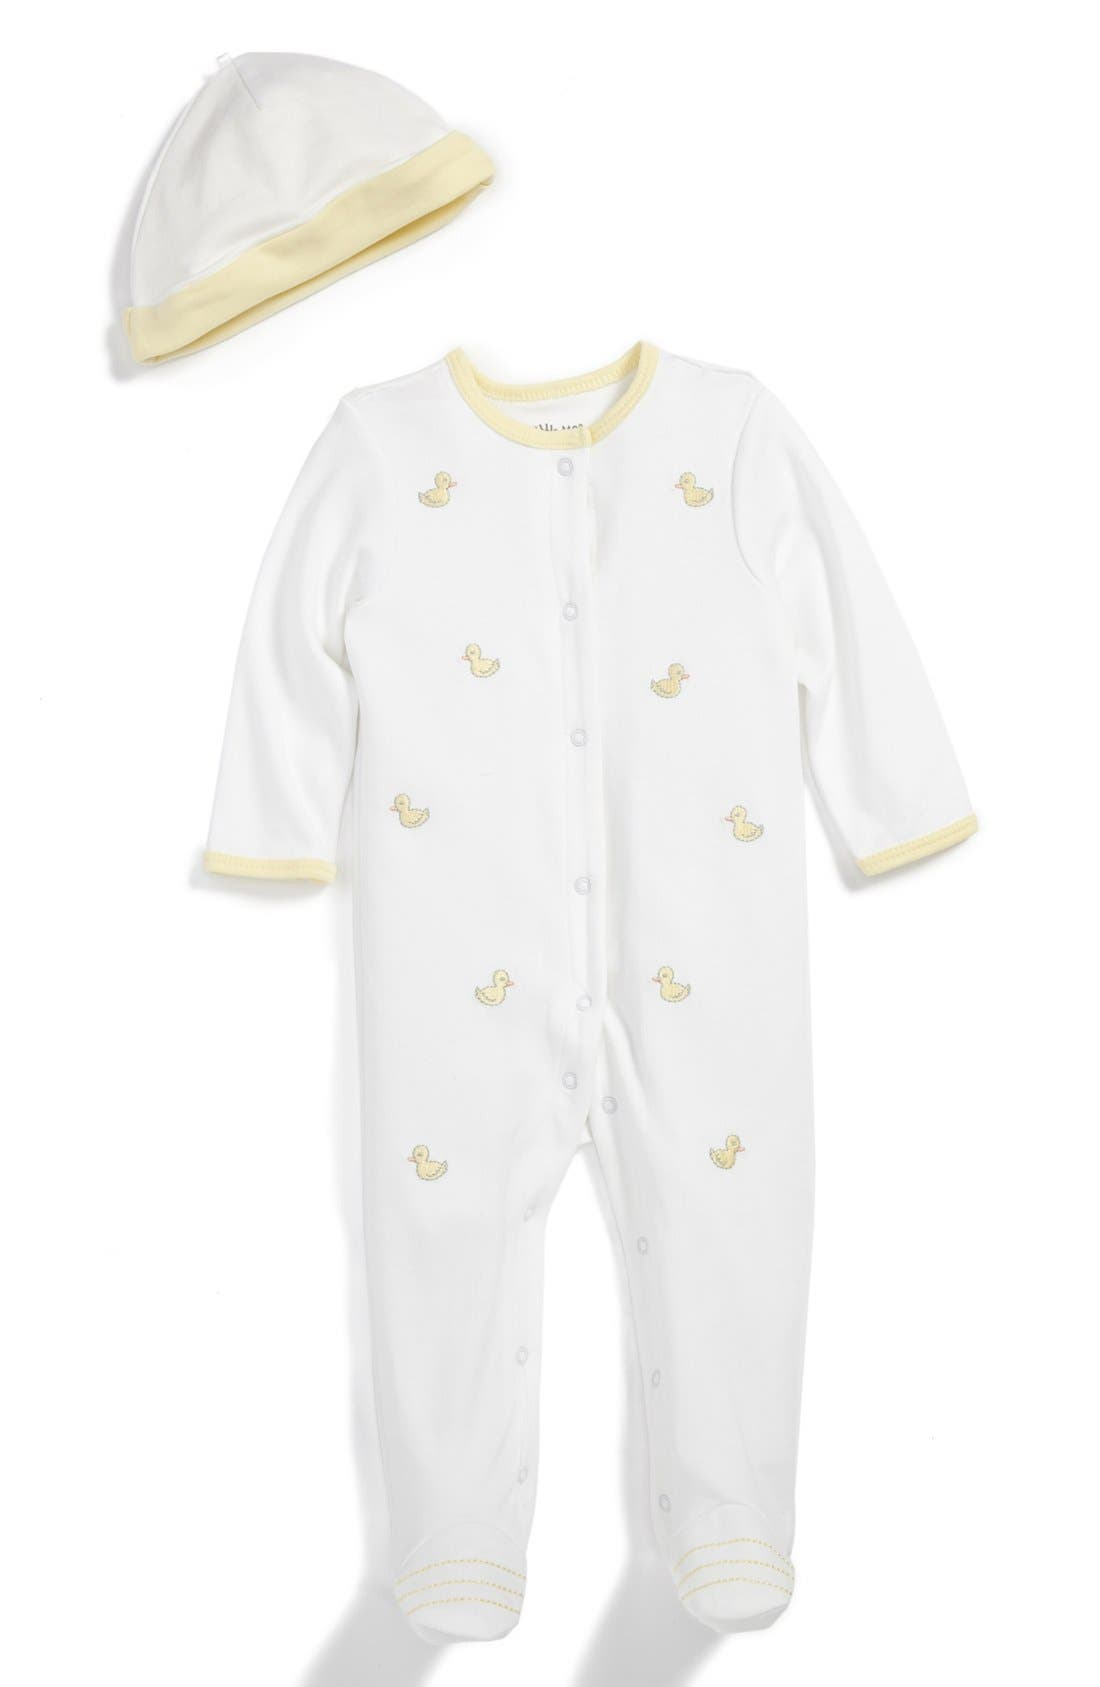 Alternate Image 1 Selected - Little Me 'Little Ducks' Embroidered Footie & Hat (Baby)